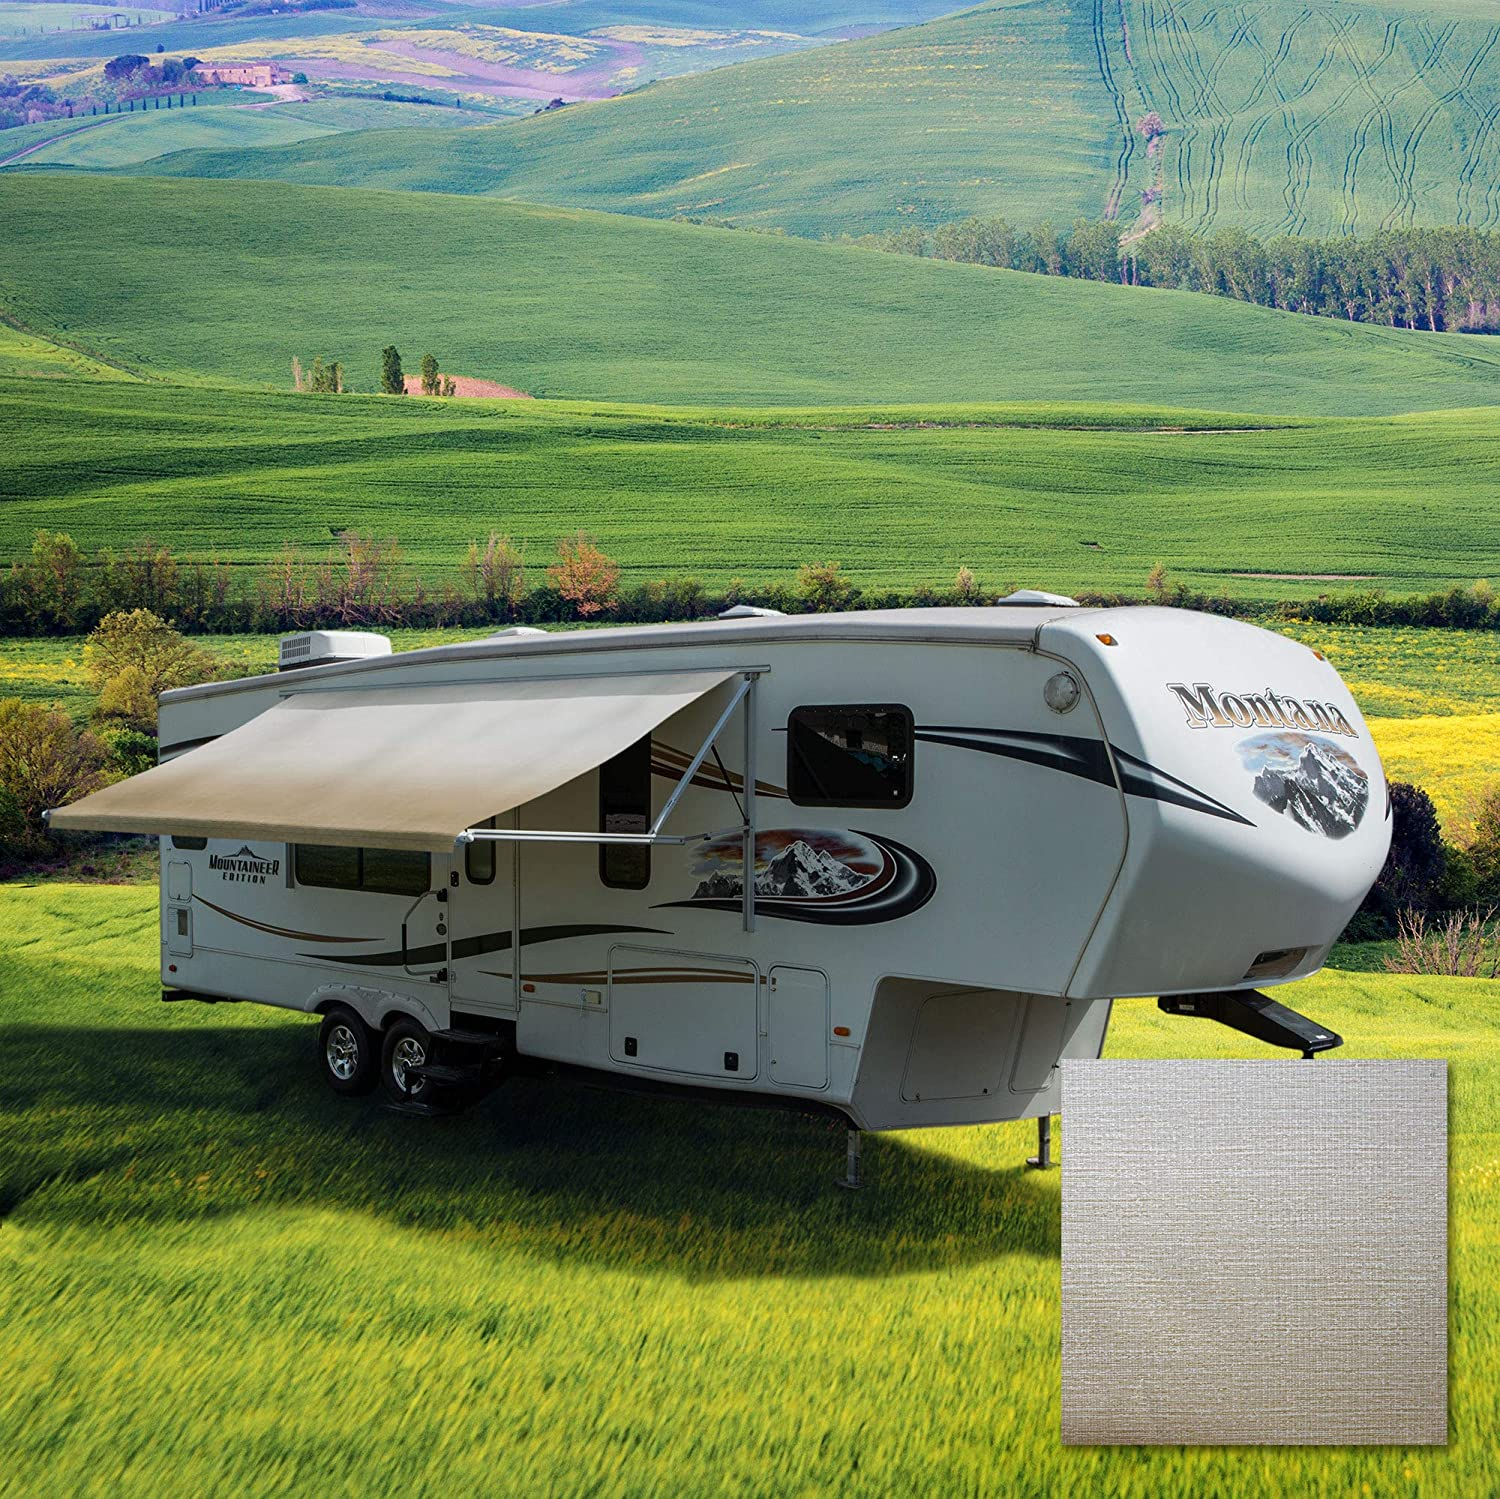 Tan//Camel Fade 17 Feet Width Standard Grade Vinyl RV Awning Fabric RV Awning Replacement Variety of Color Options